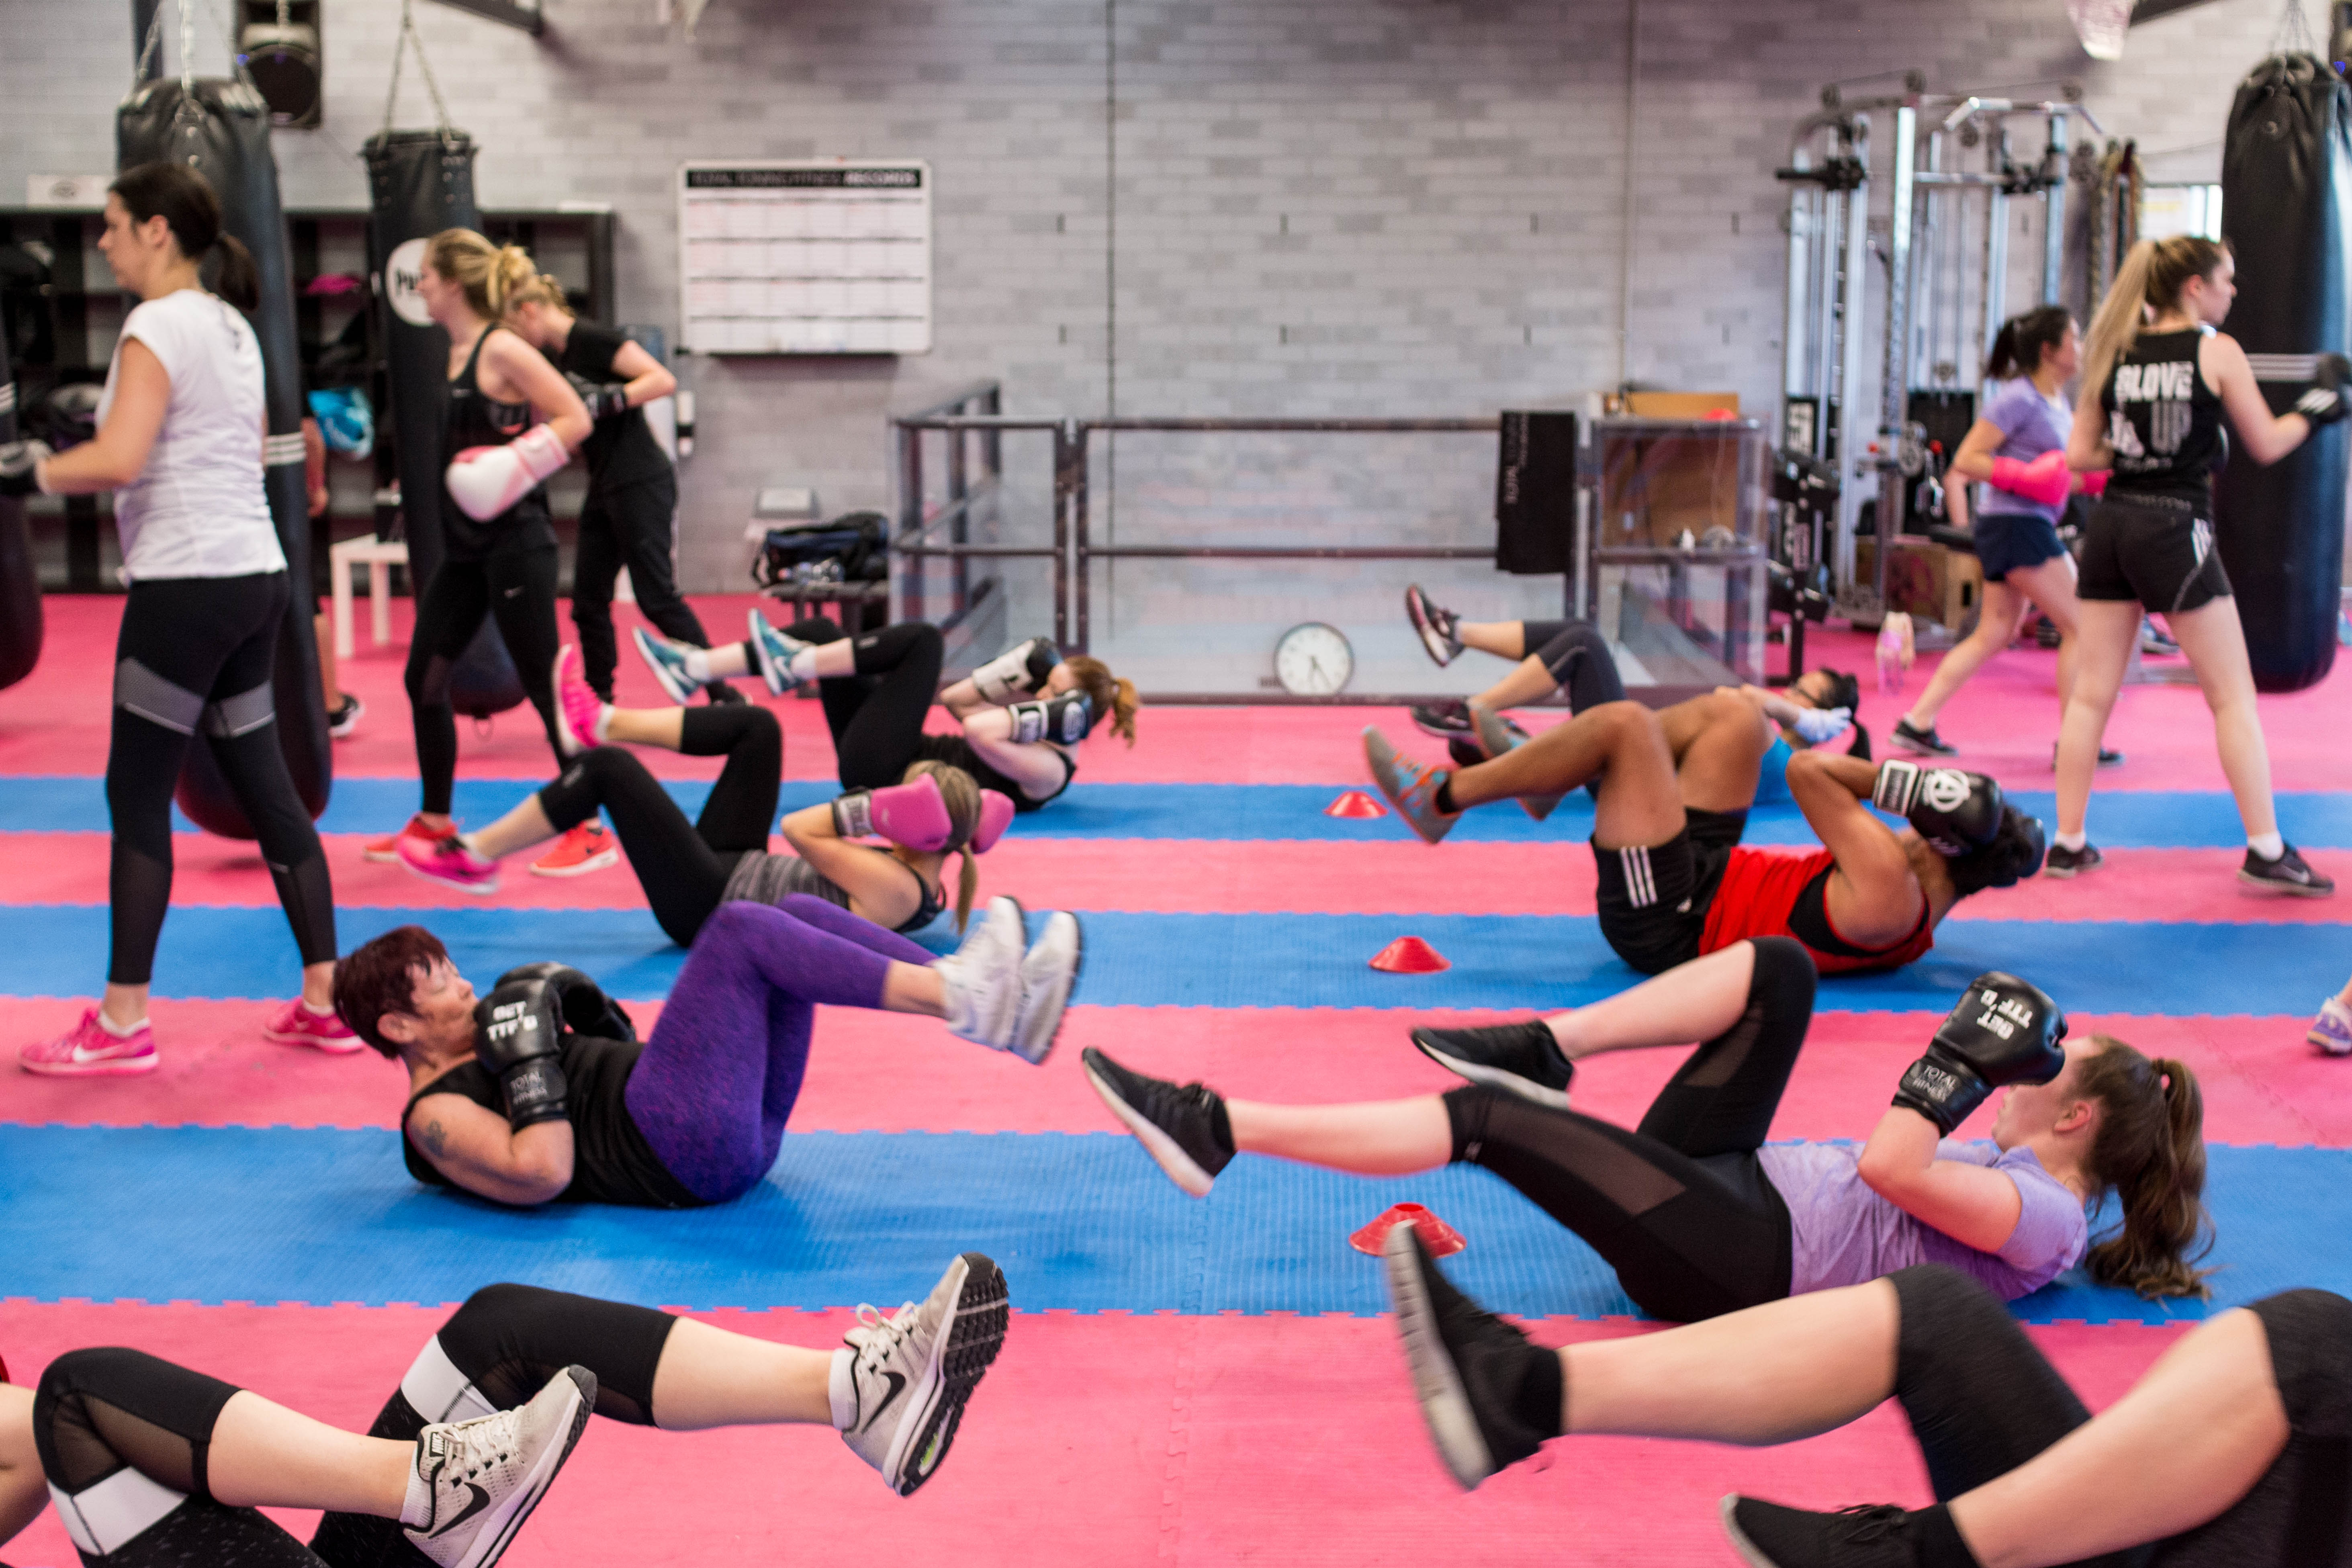 KICKBOXING AND CIRCUITS PERFECTED